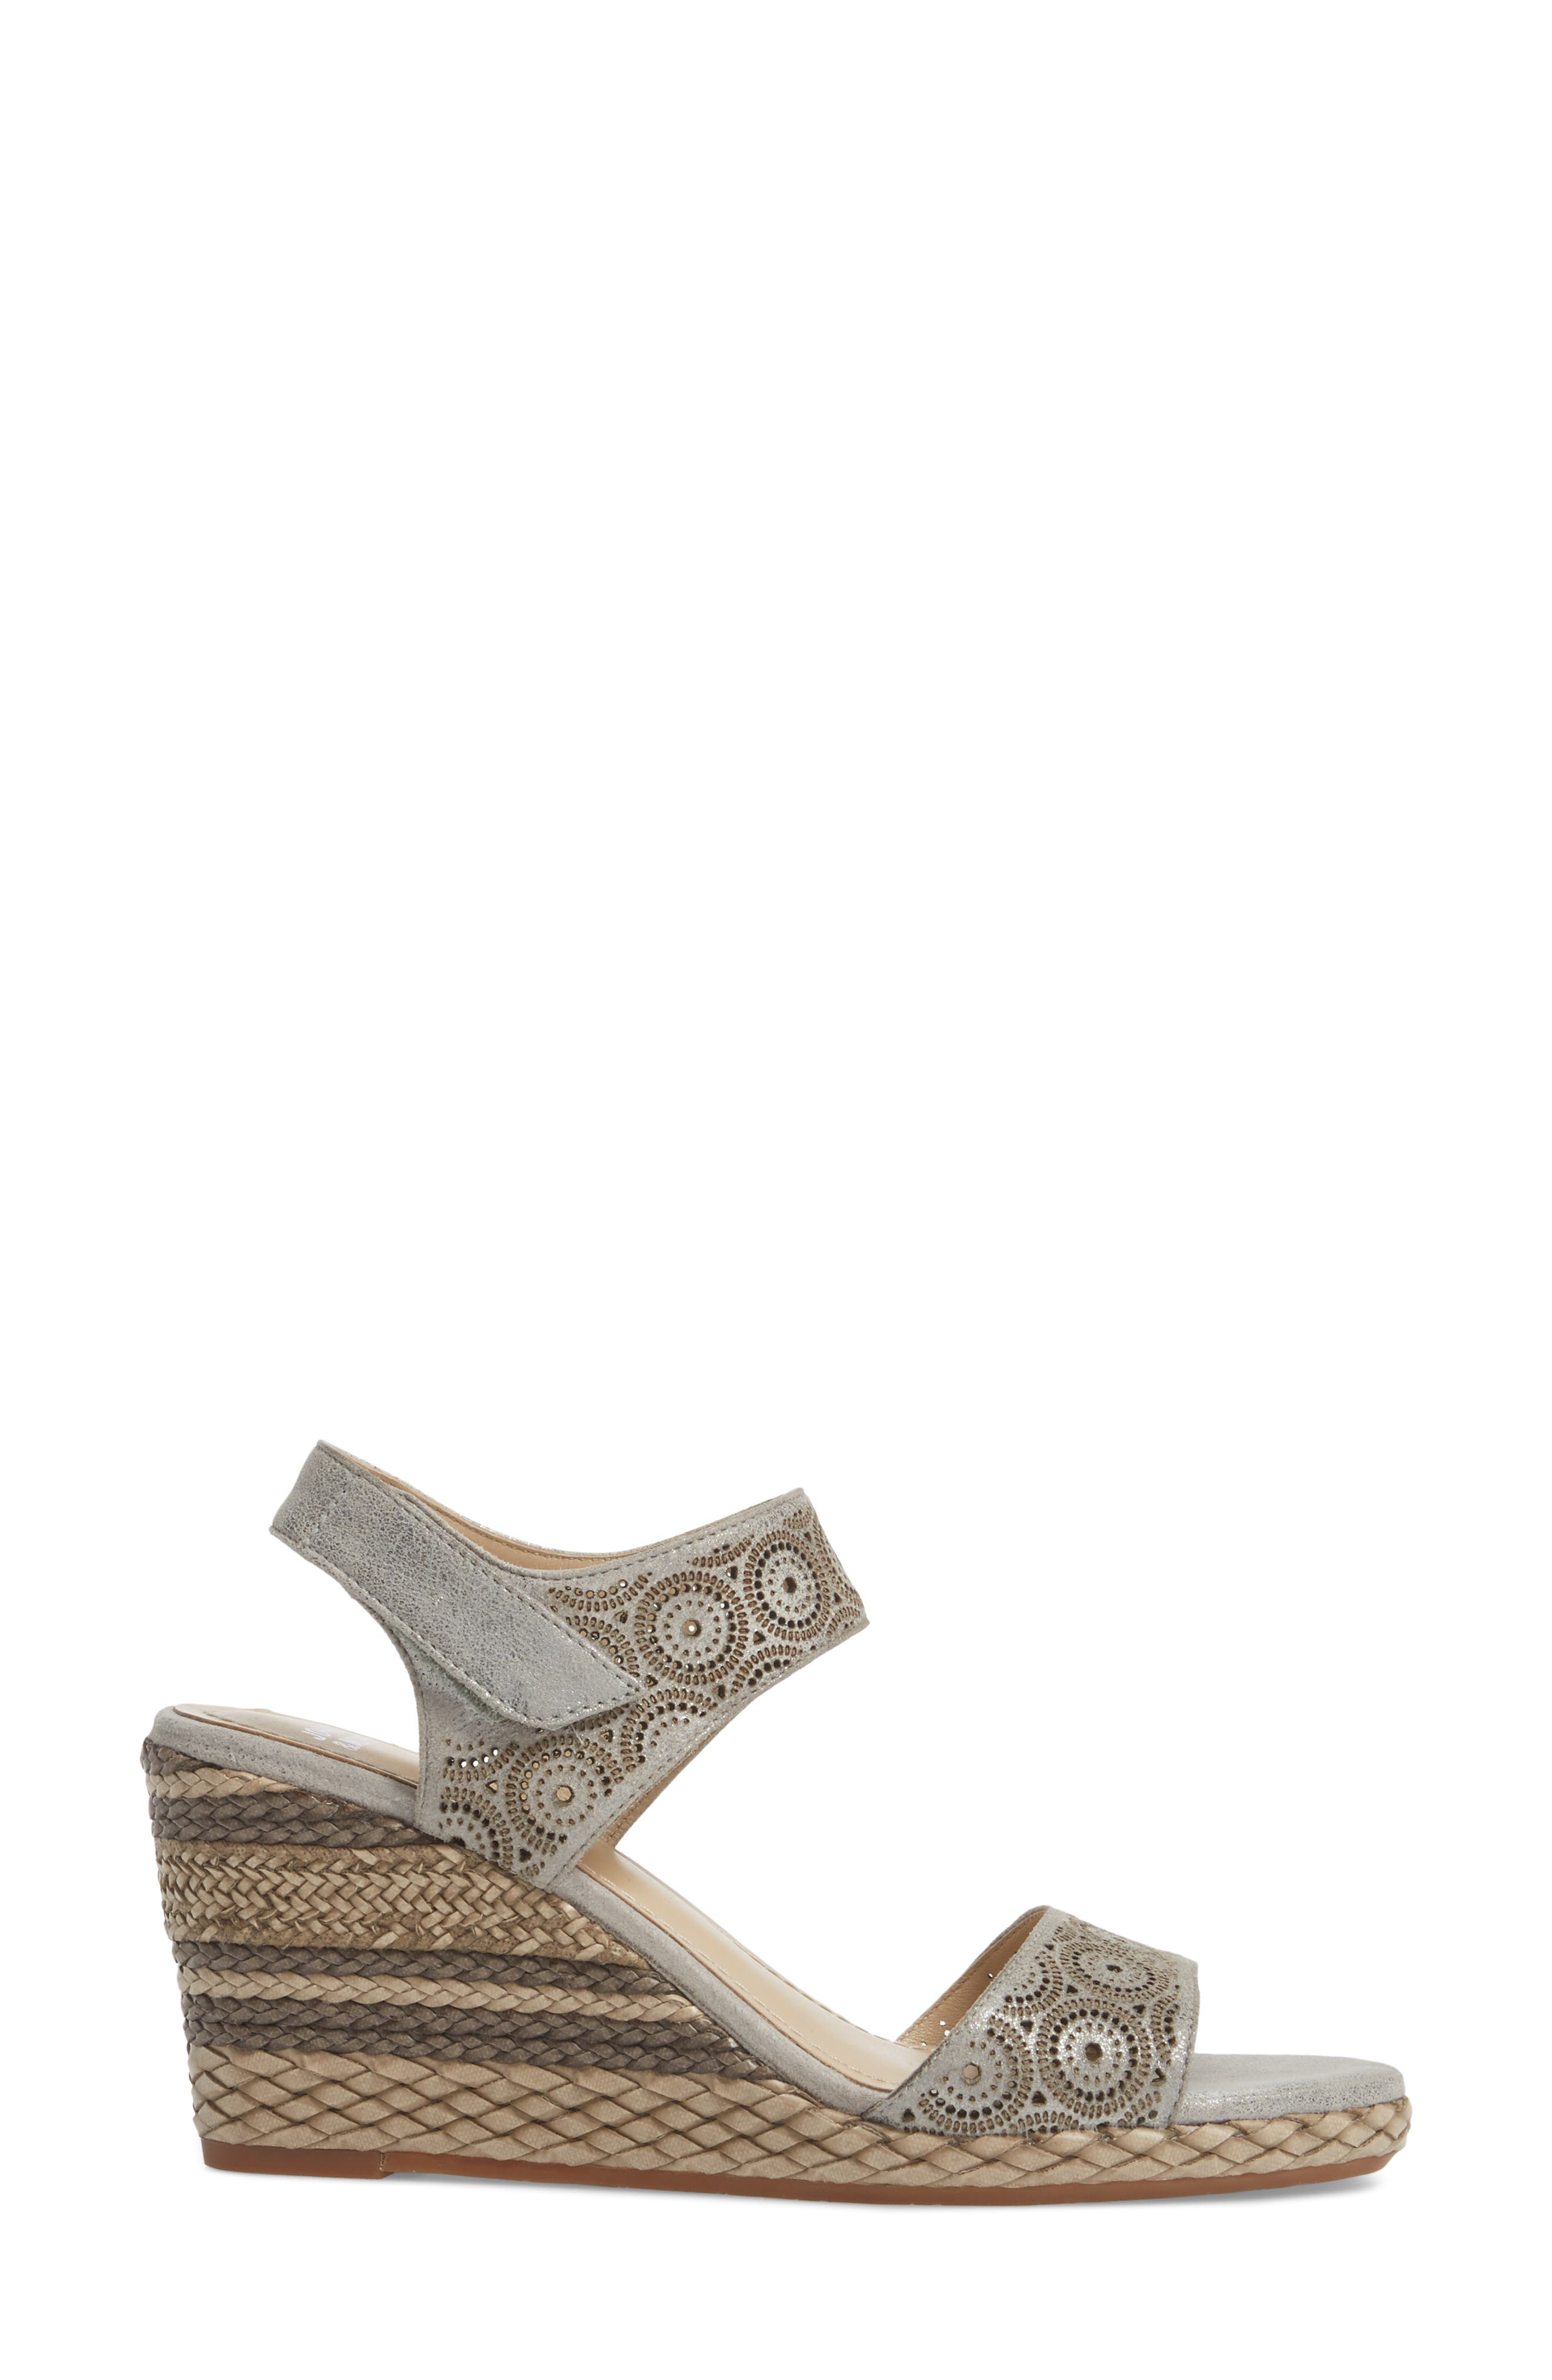 Georgiana Wedge Sandal,                             Alternate thumbnail 3, color,                             Pewter Leather